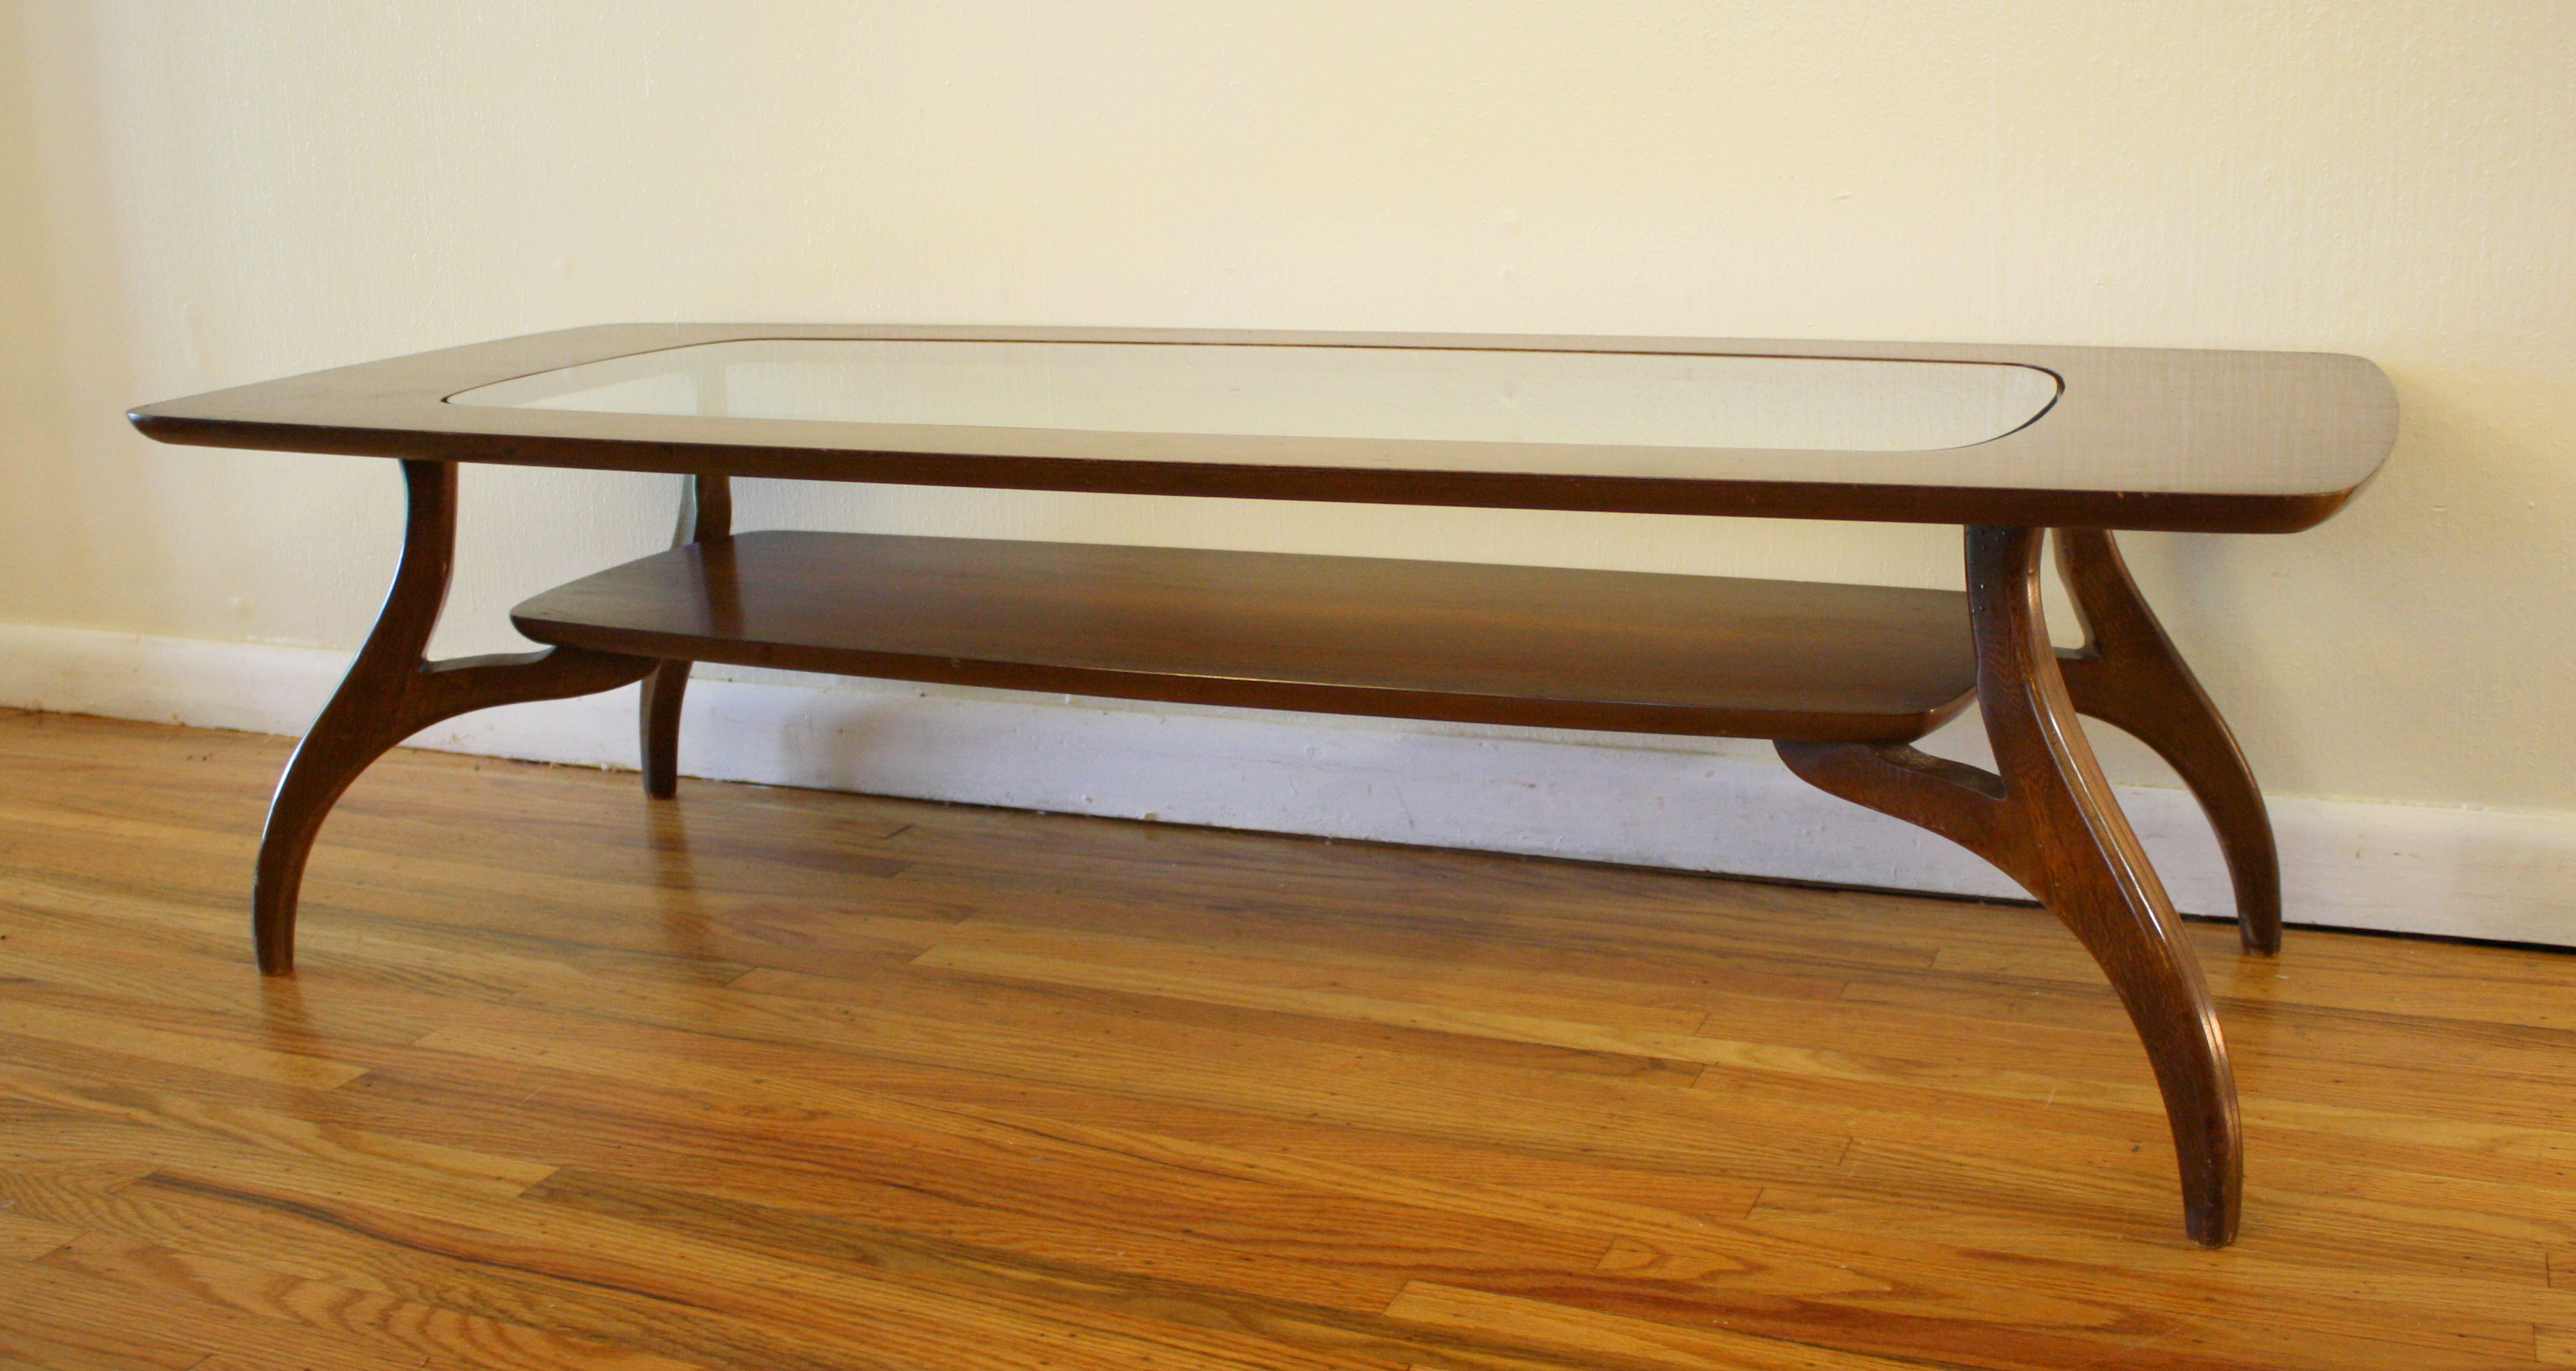 Glass Top Coffee Tables Chic Elegant Brown Painted Wooden Coffee Table  Clear Glass Top Coffee Table